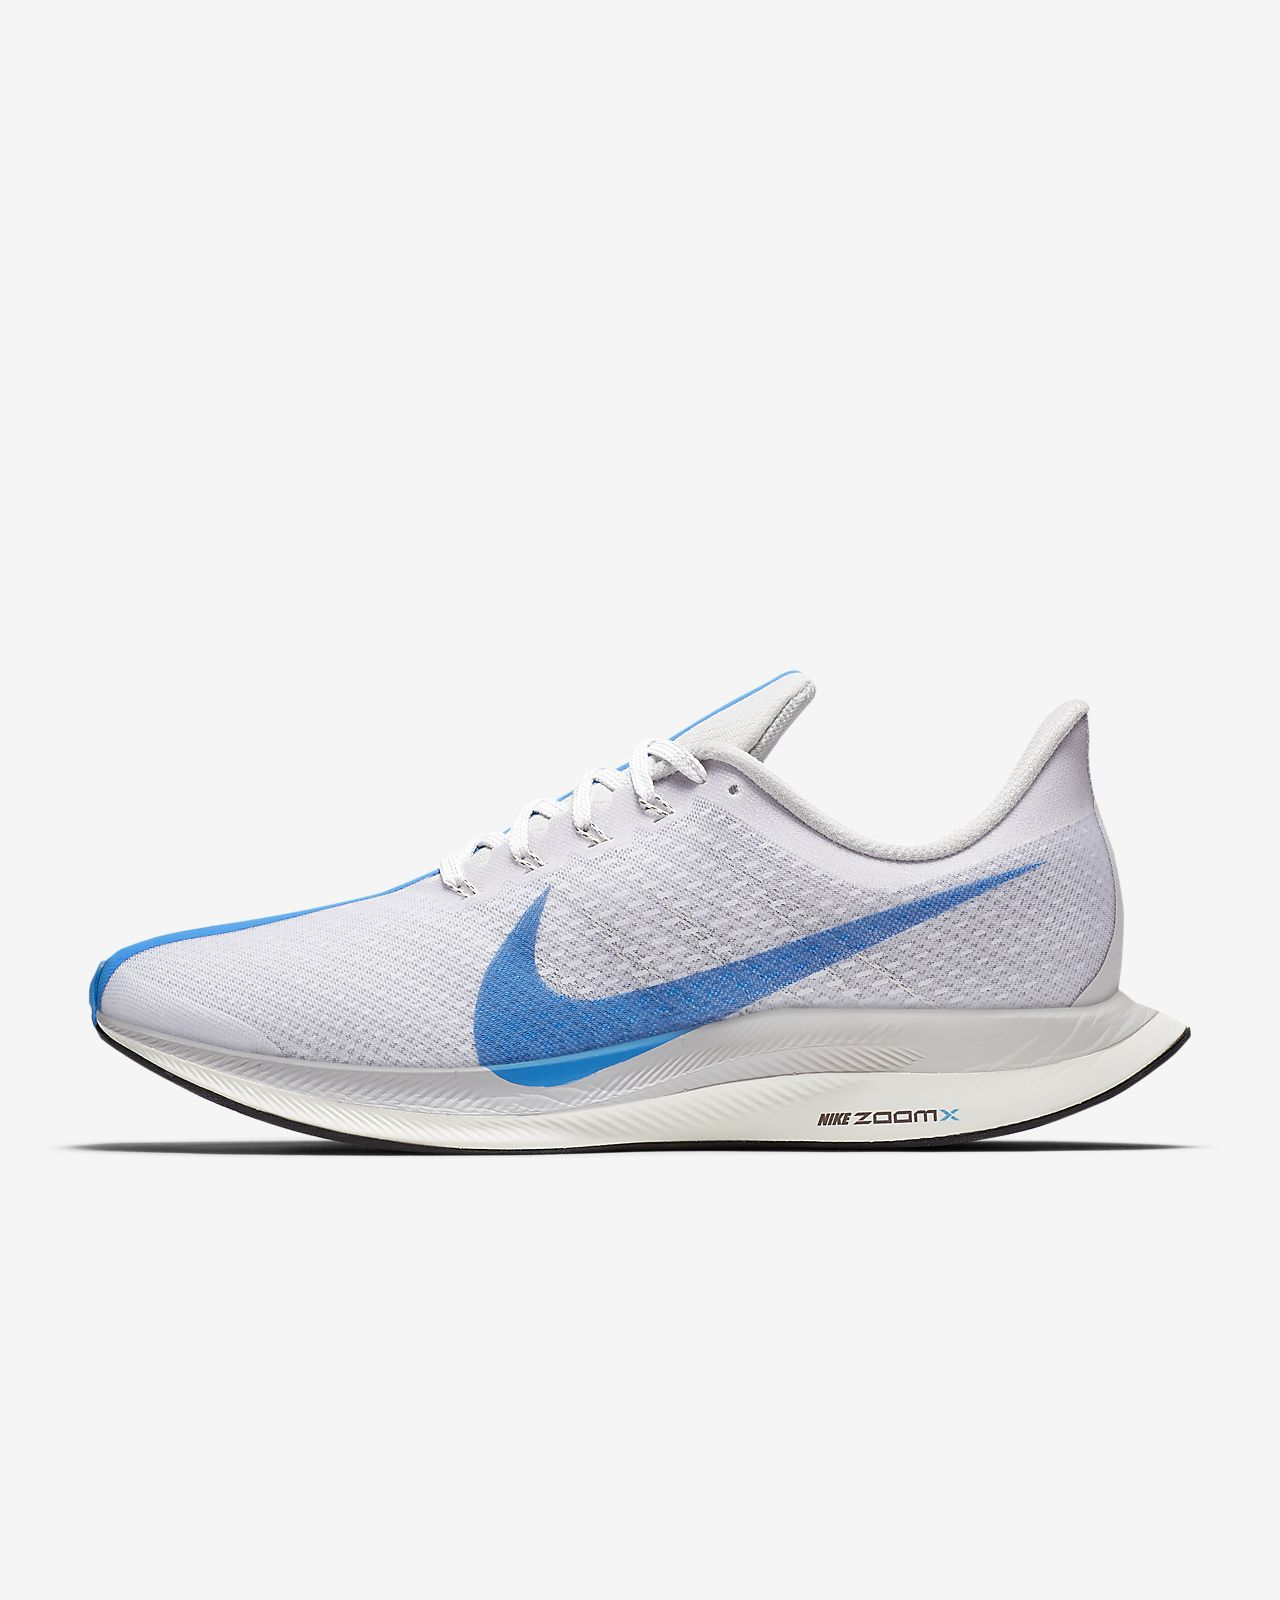 94563c350d53c3 Nike Zoom Pegasus Turbo Men's Running Shoe. Nike.com IN